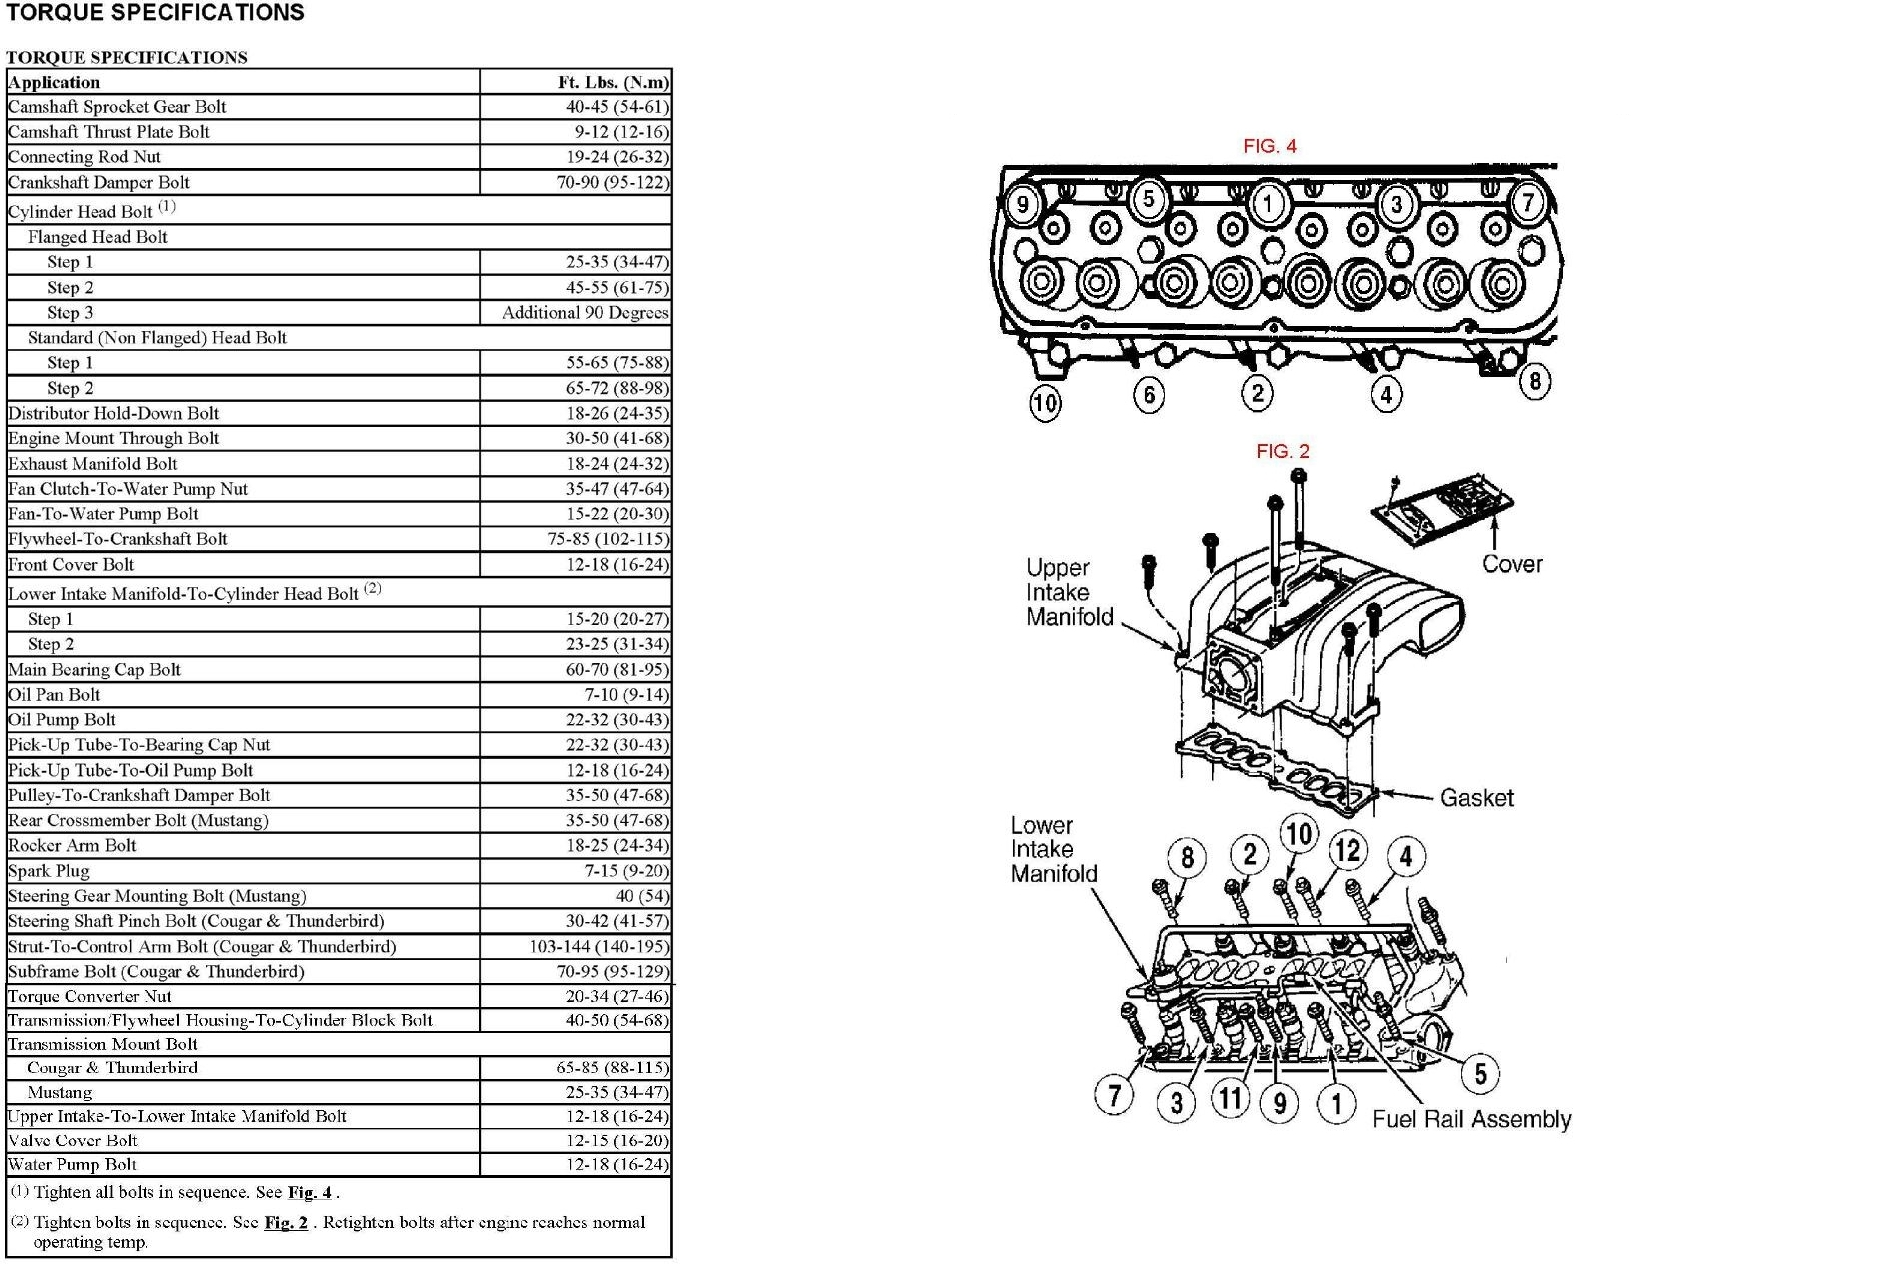 Cylinder Head Torque Specs Diagram together with 2003 Volvo S80 Engine Diagram also Valvetrain Diagram Labeled additionally 2006 Volvo S40 Engine Diagram as well 2000 Volvo S40 Coolant Temp Sensor Location. on 2006 volvo xc90 wiring diagram